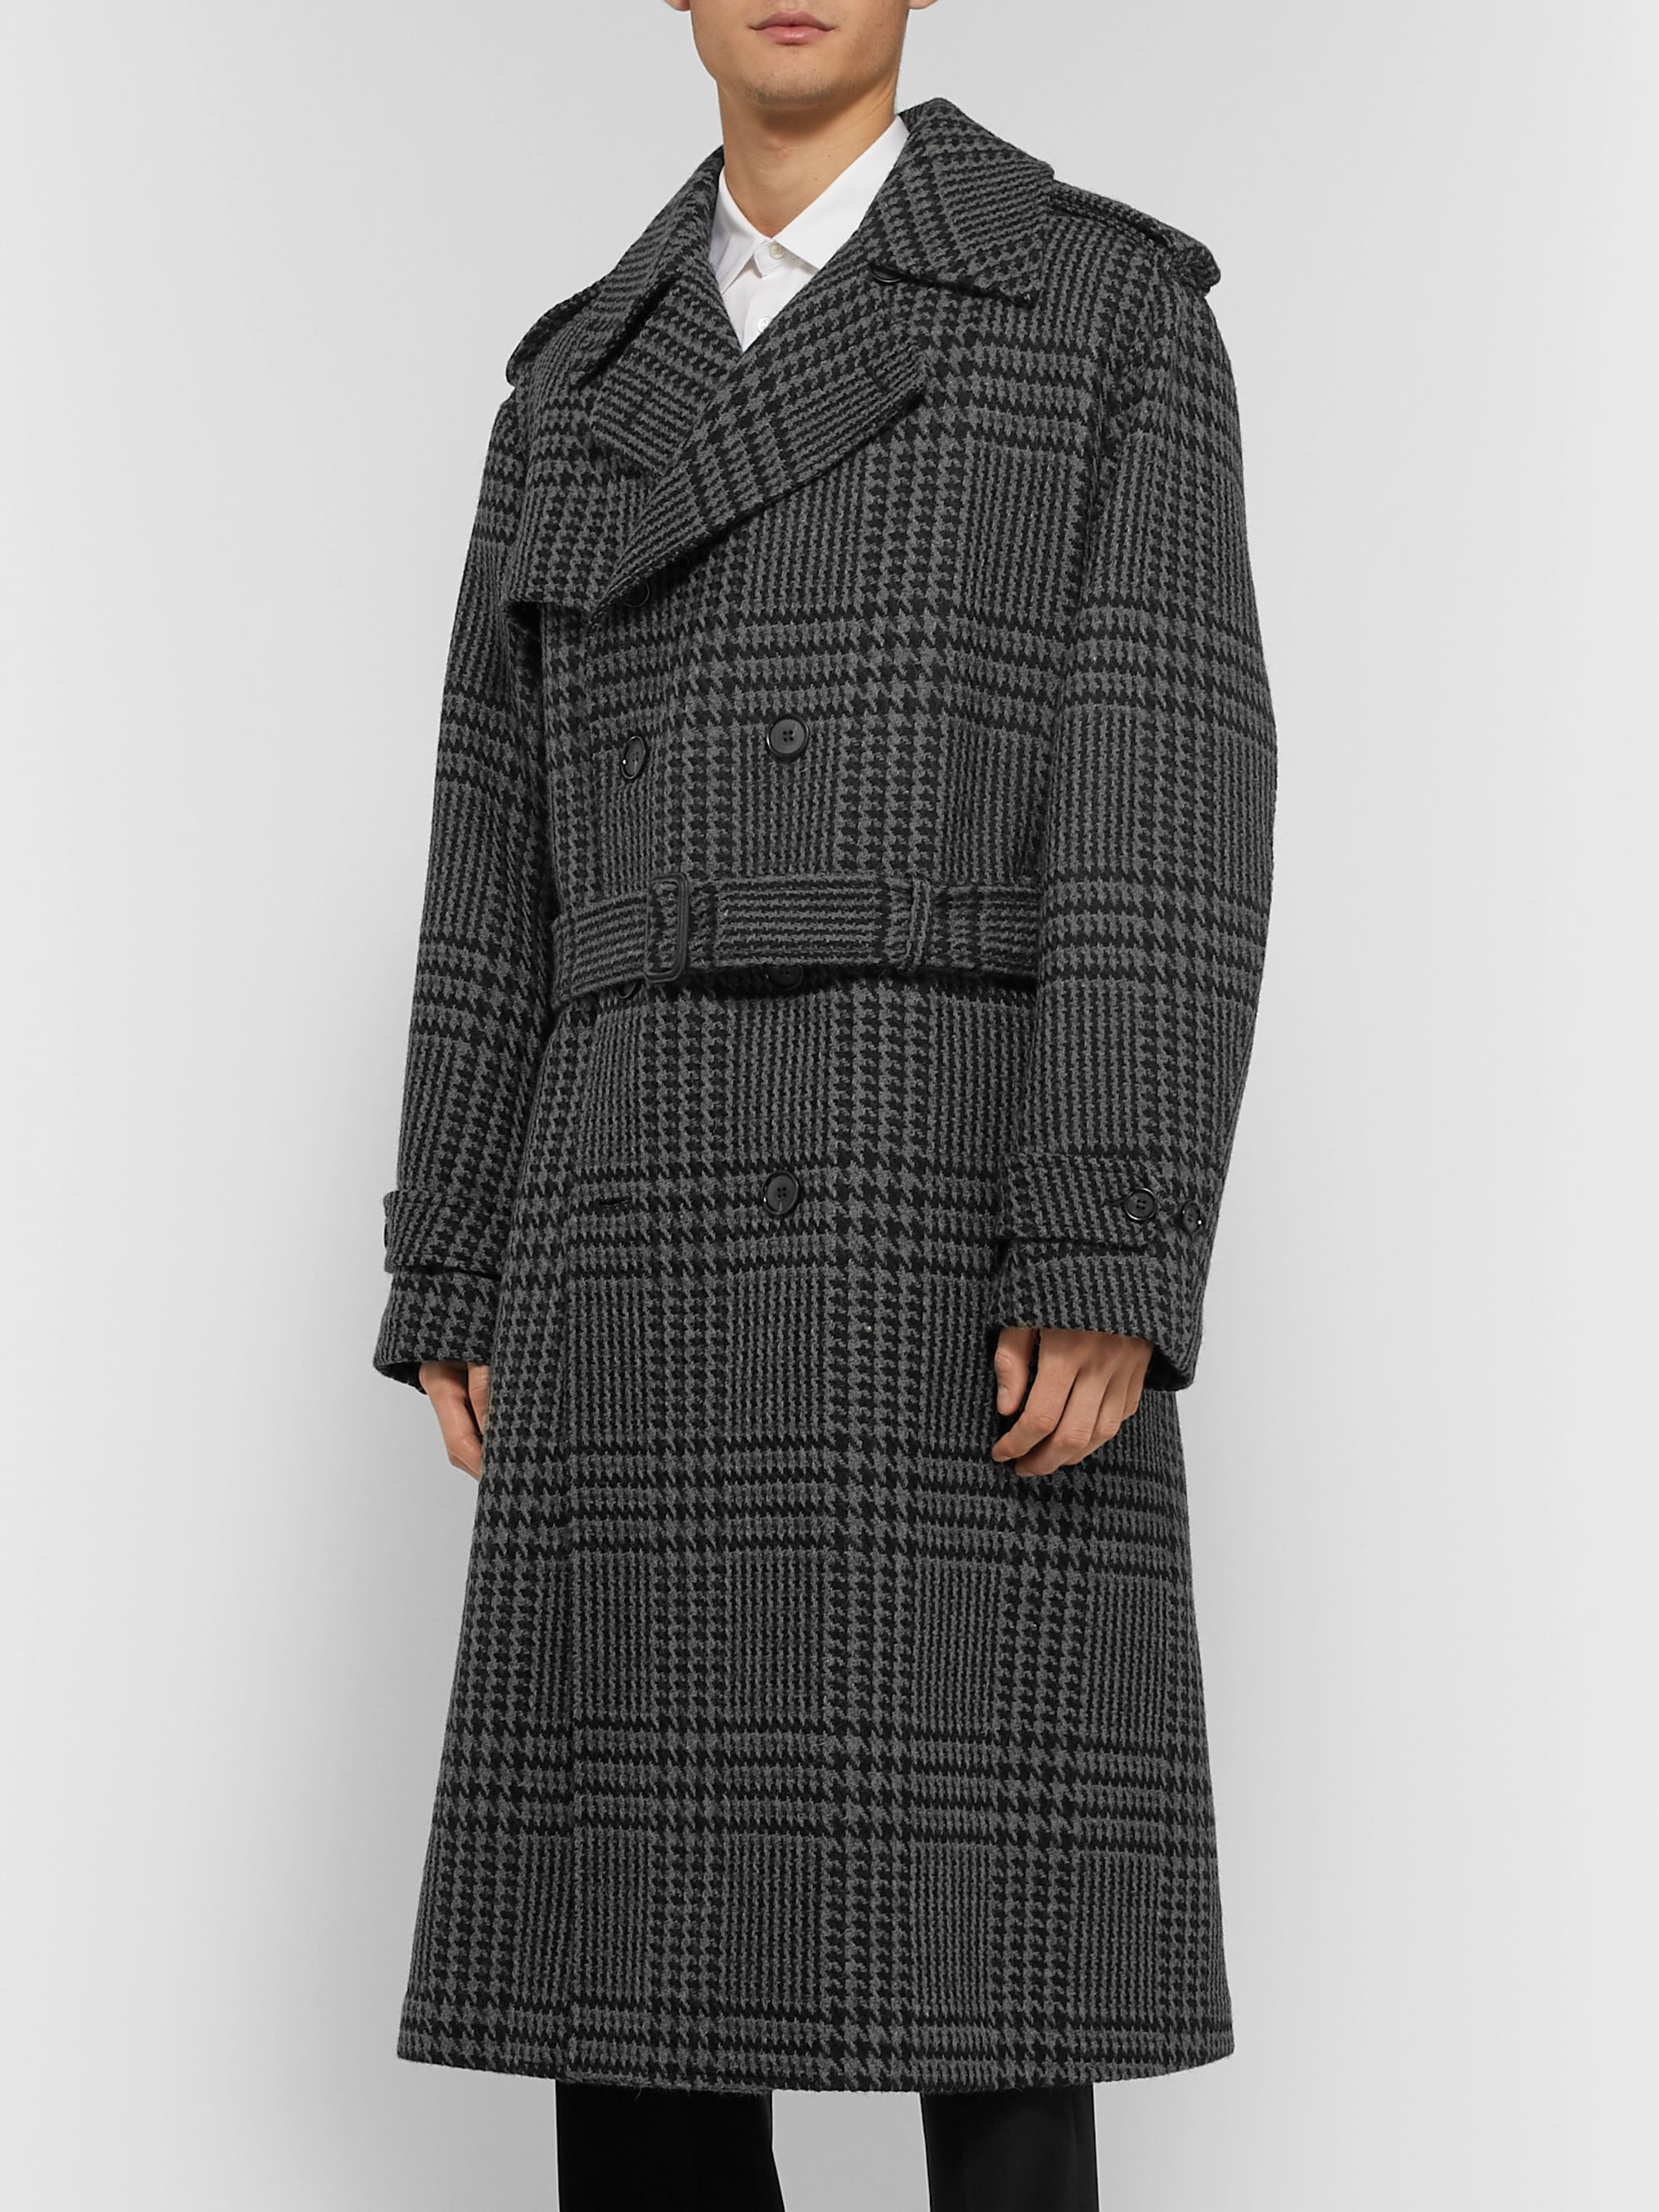 Alexander McQueen Double-Breasted Houndstooth Wool Coat